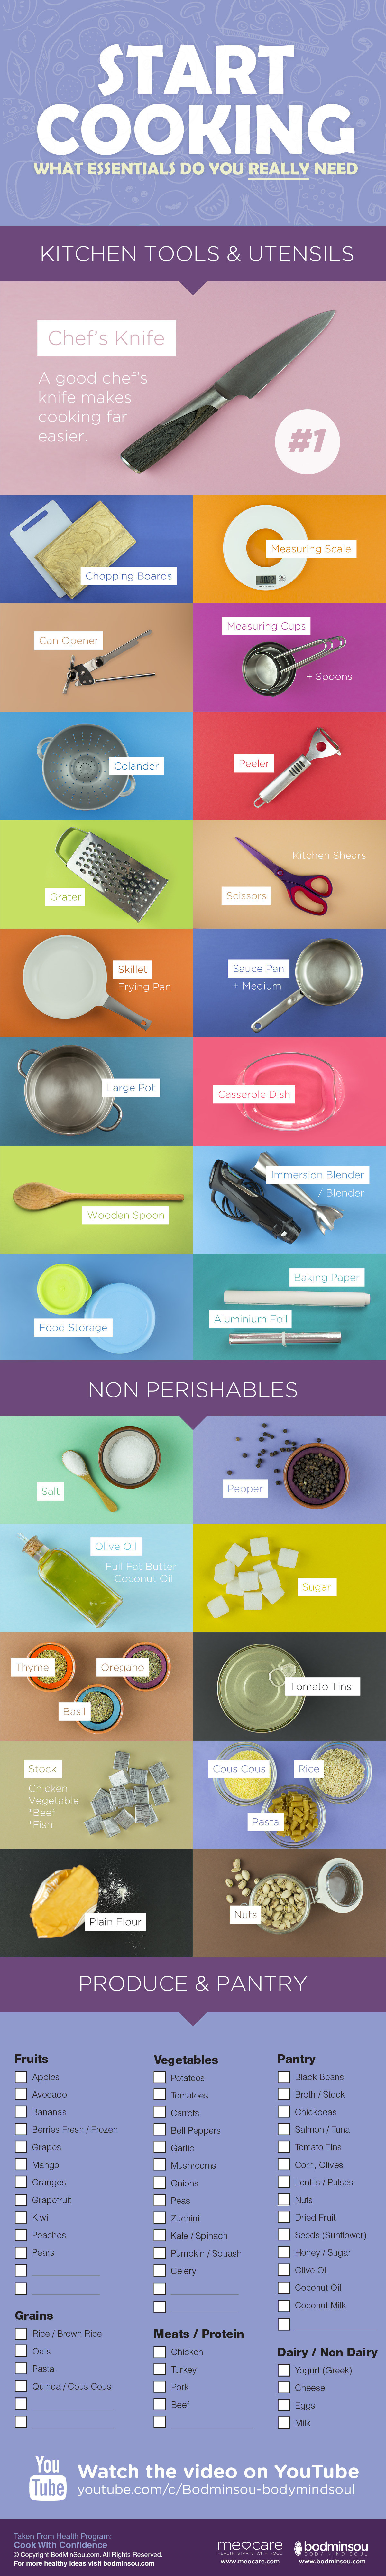 25 Cheat Sheets That Make Cooking Healthier Less Of A Freaking Chore